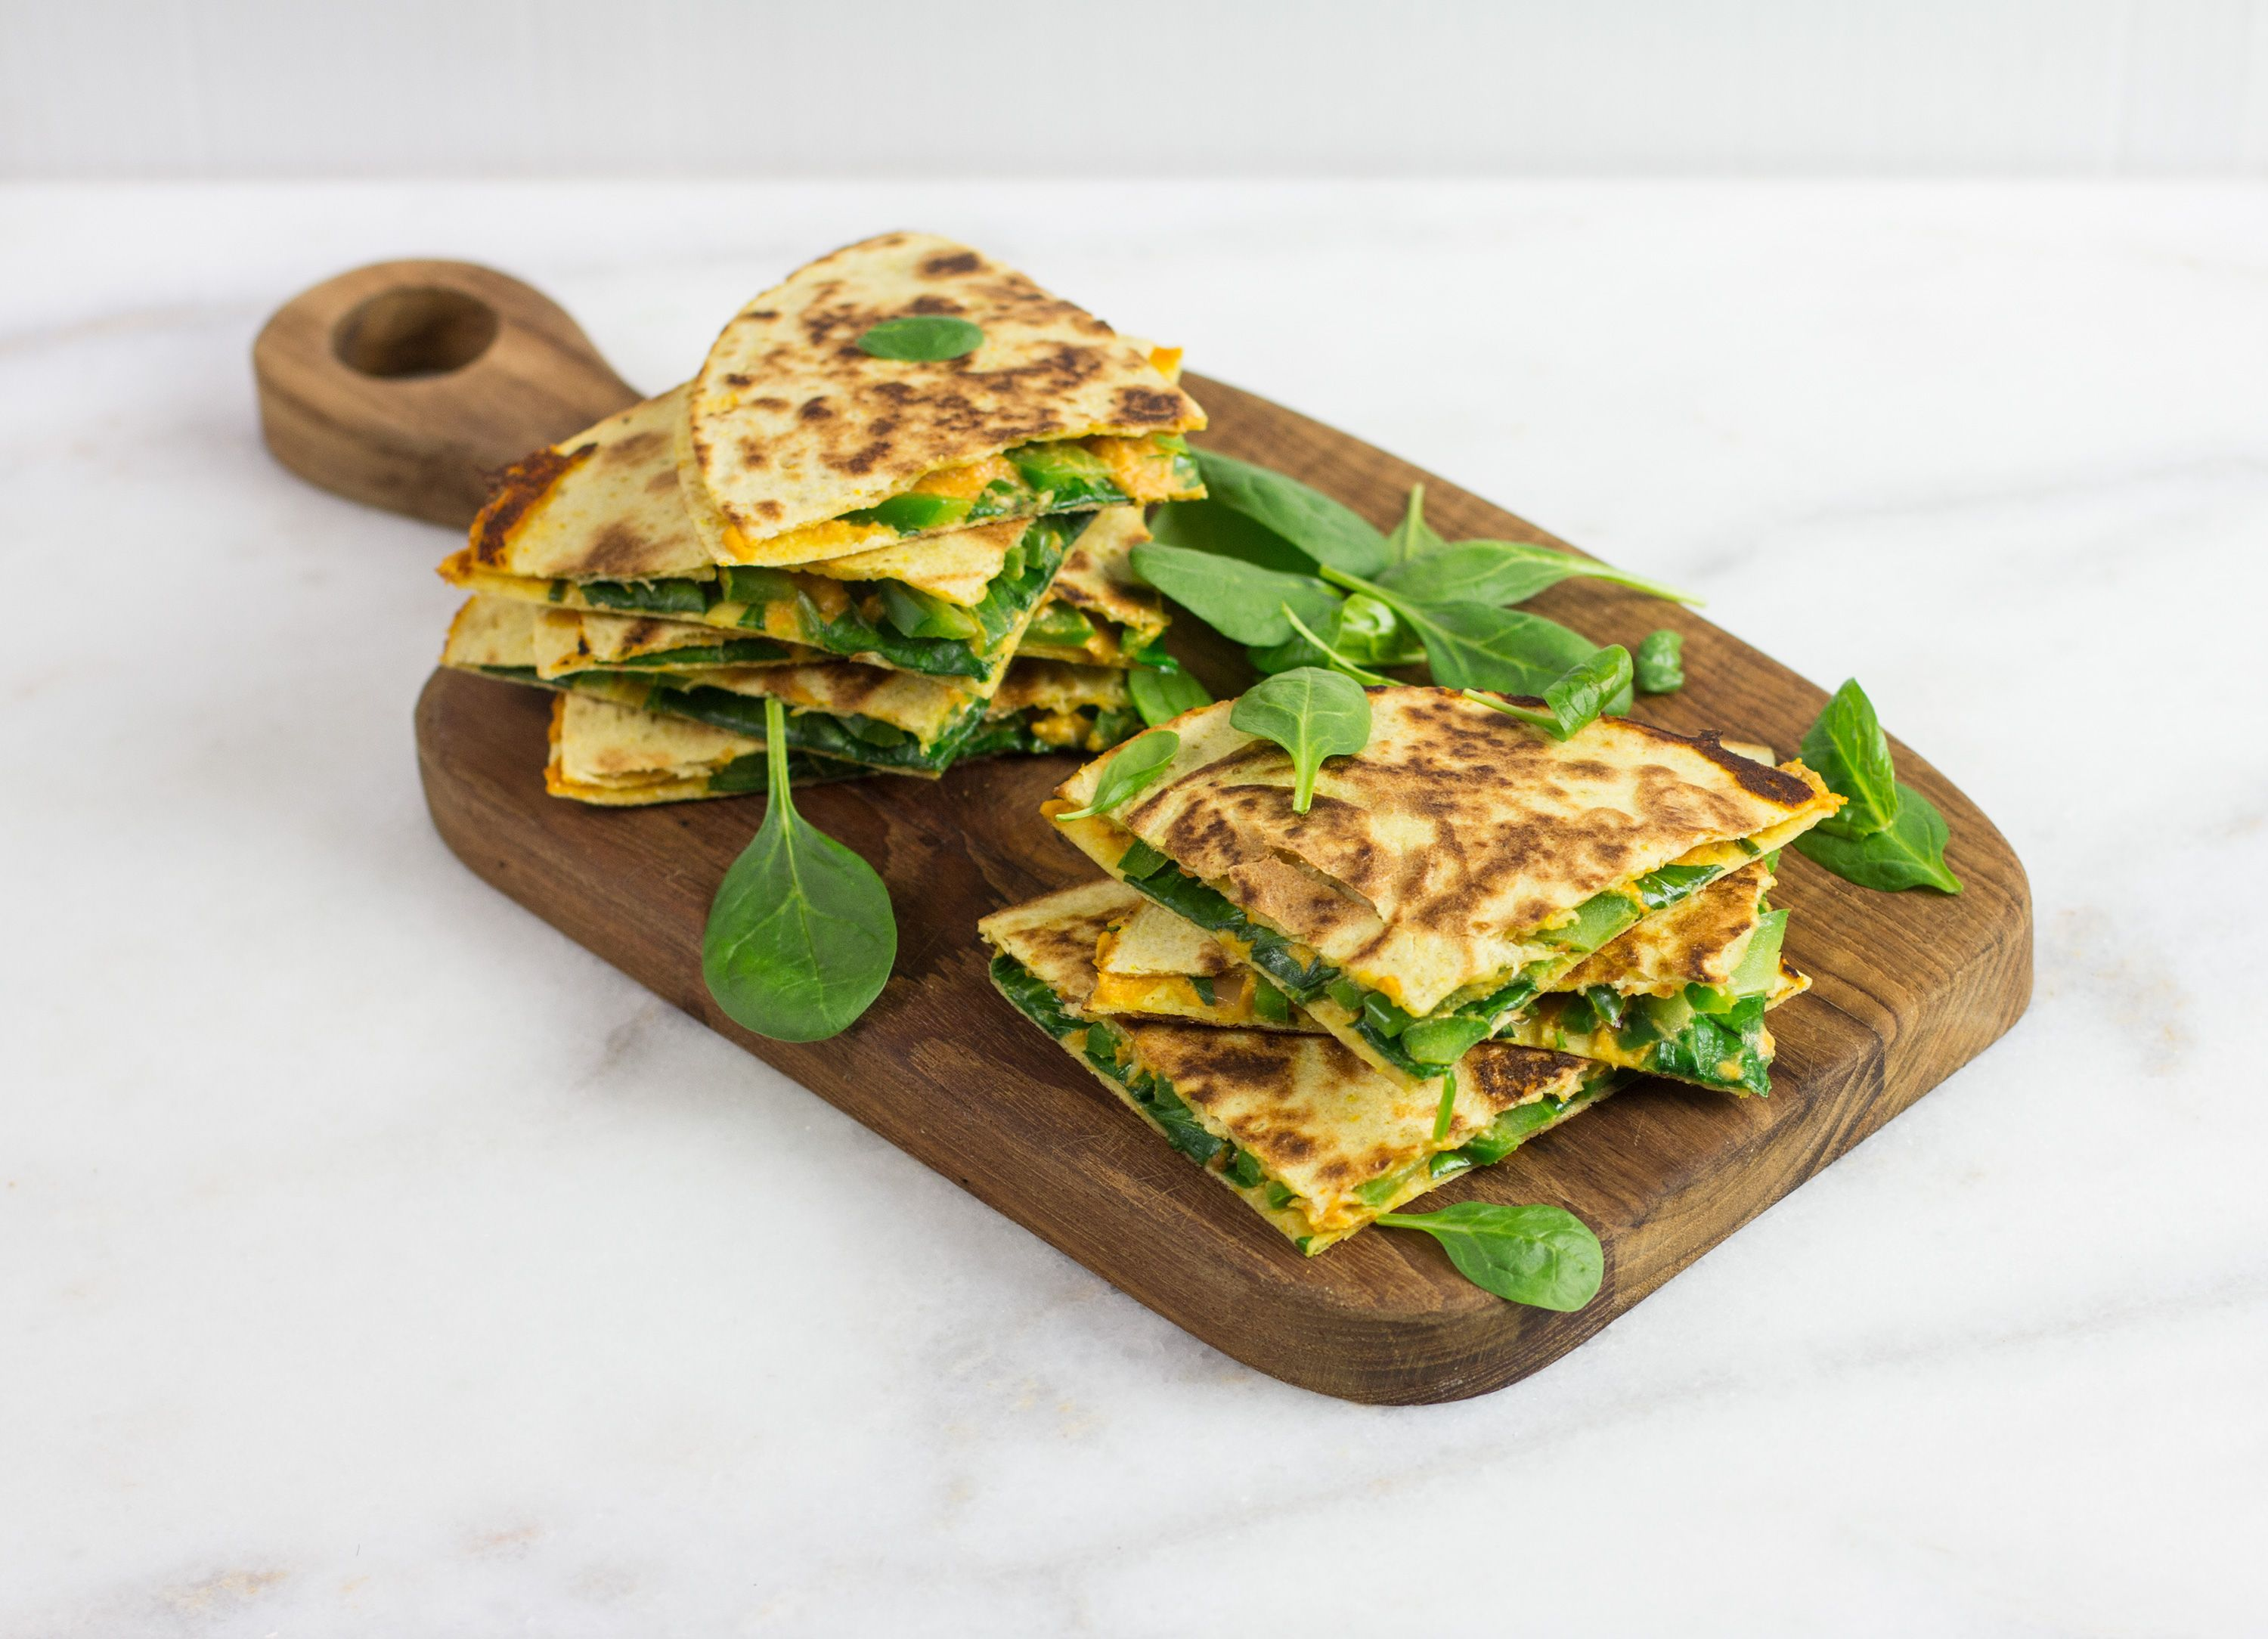 Lighter: Fiesta Hummus Quesadilla